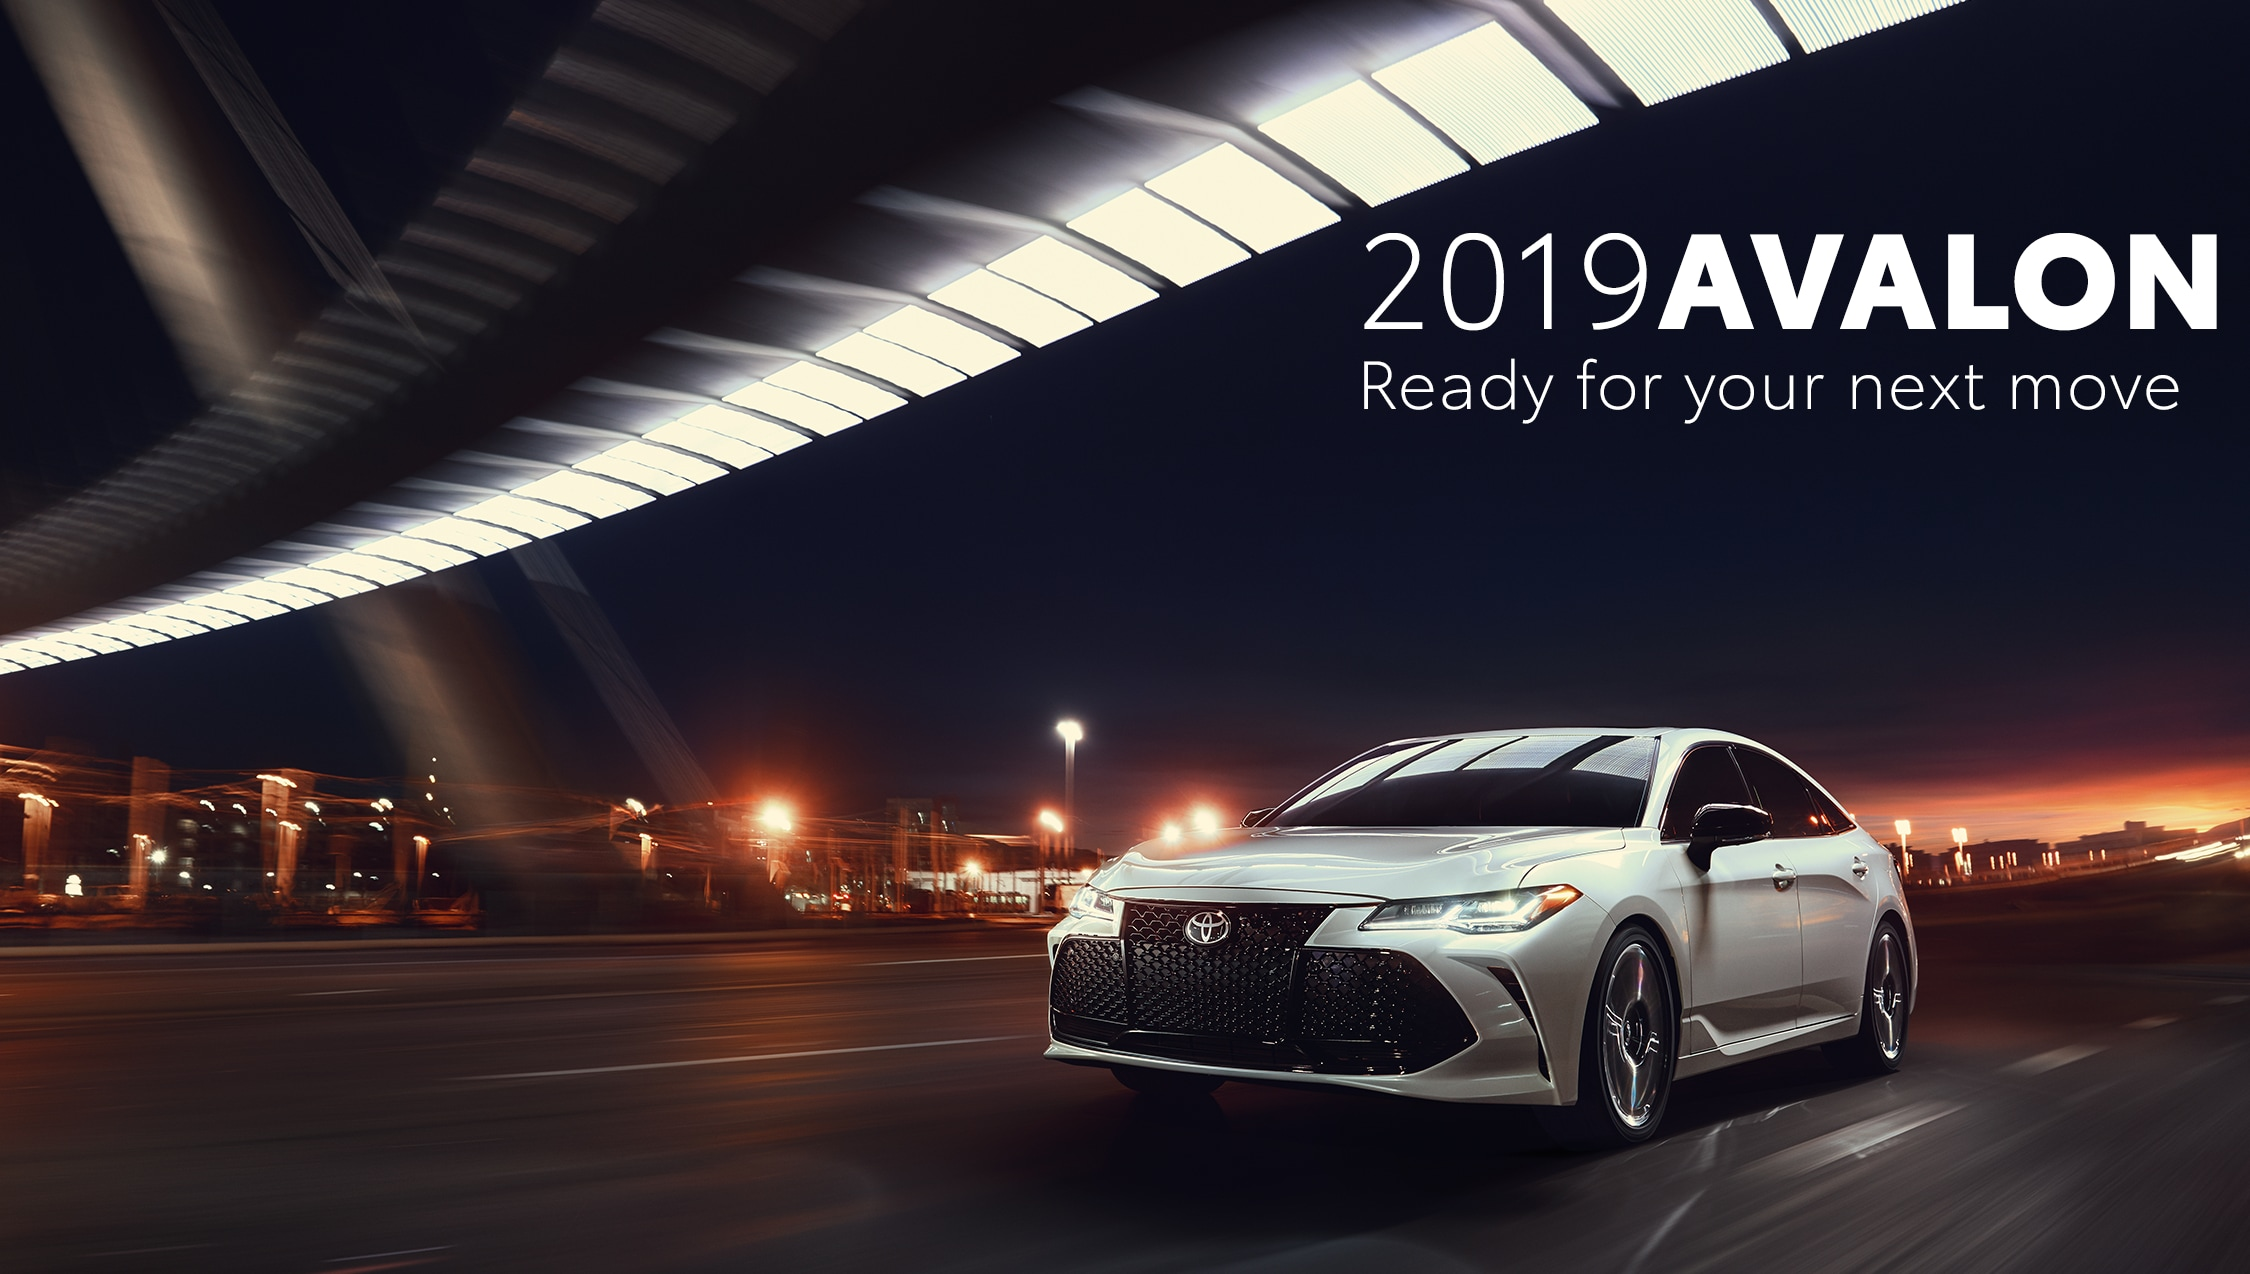 Good The All New 2019 Toyota Avalon | Colonial Toyota, Indiana, PA